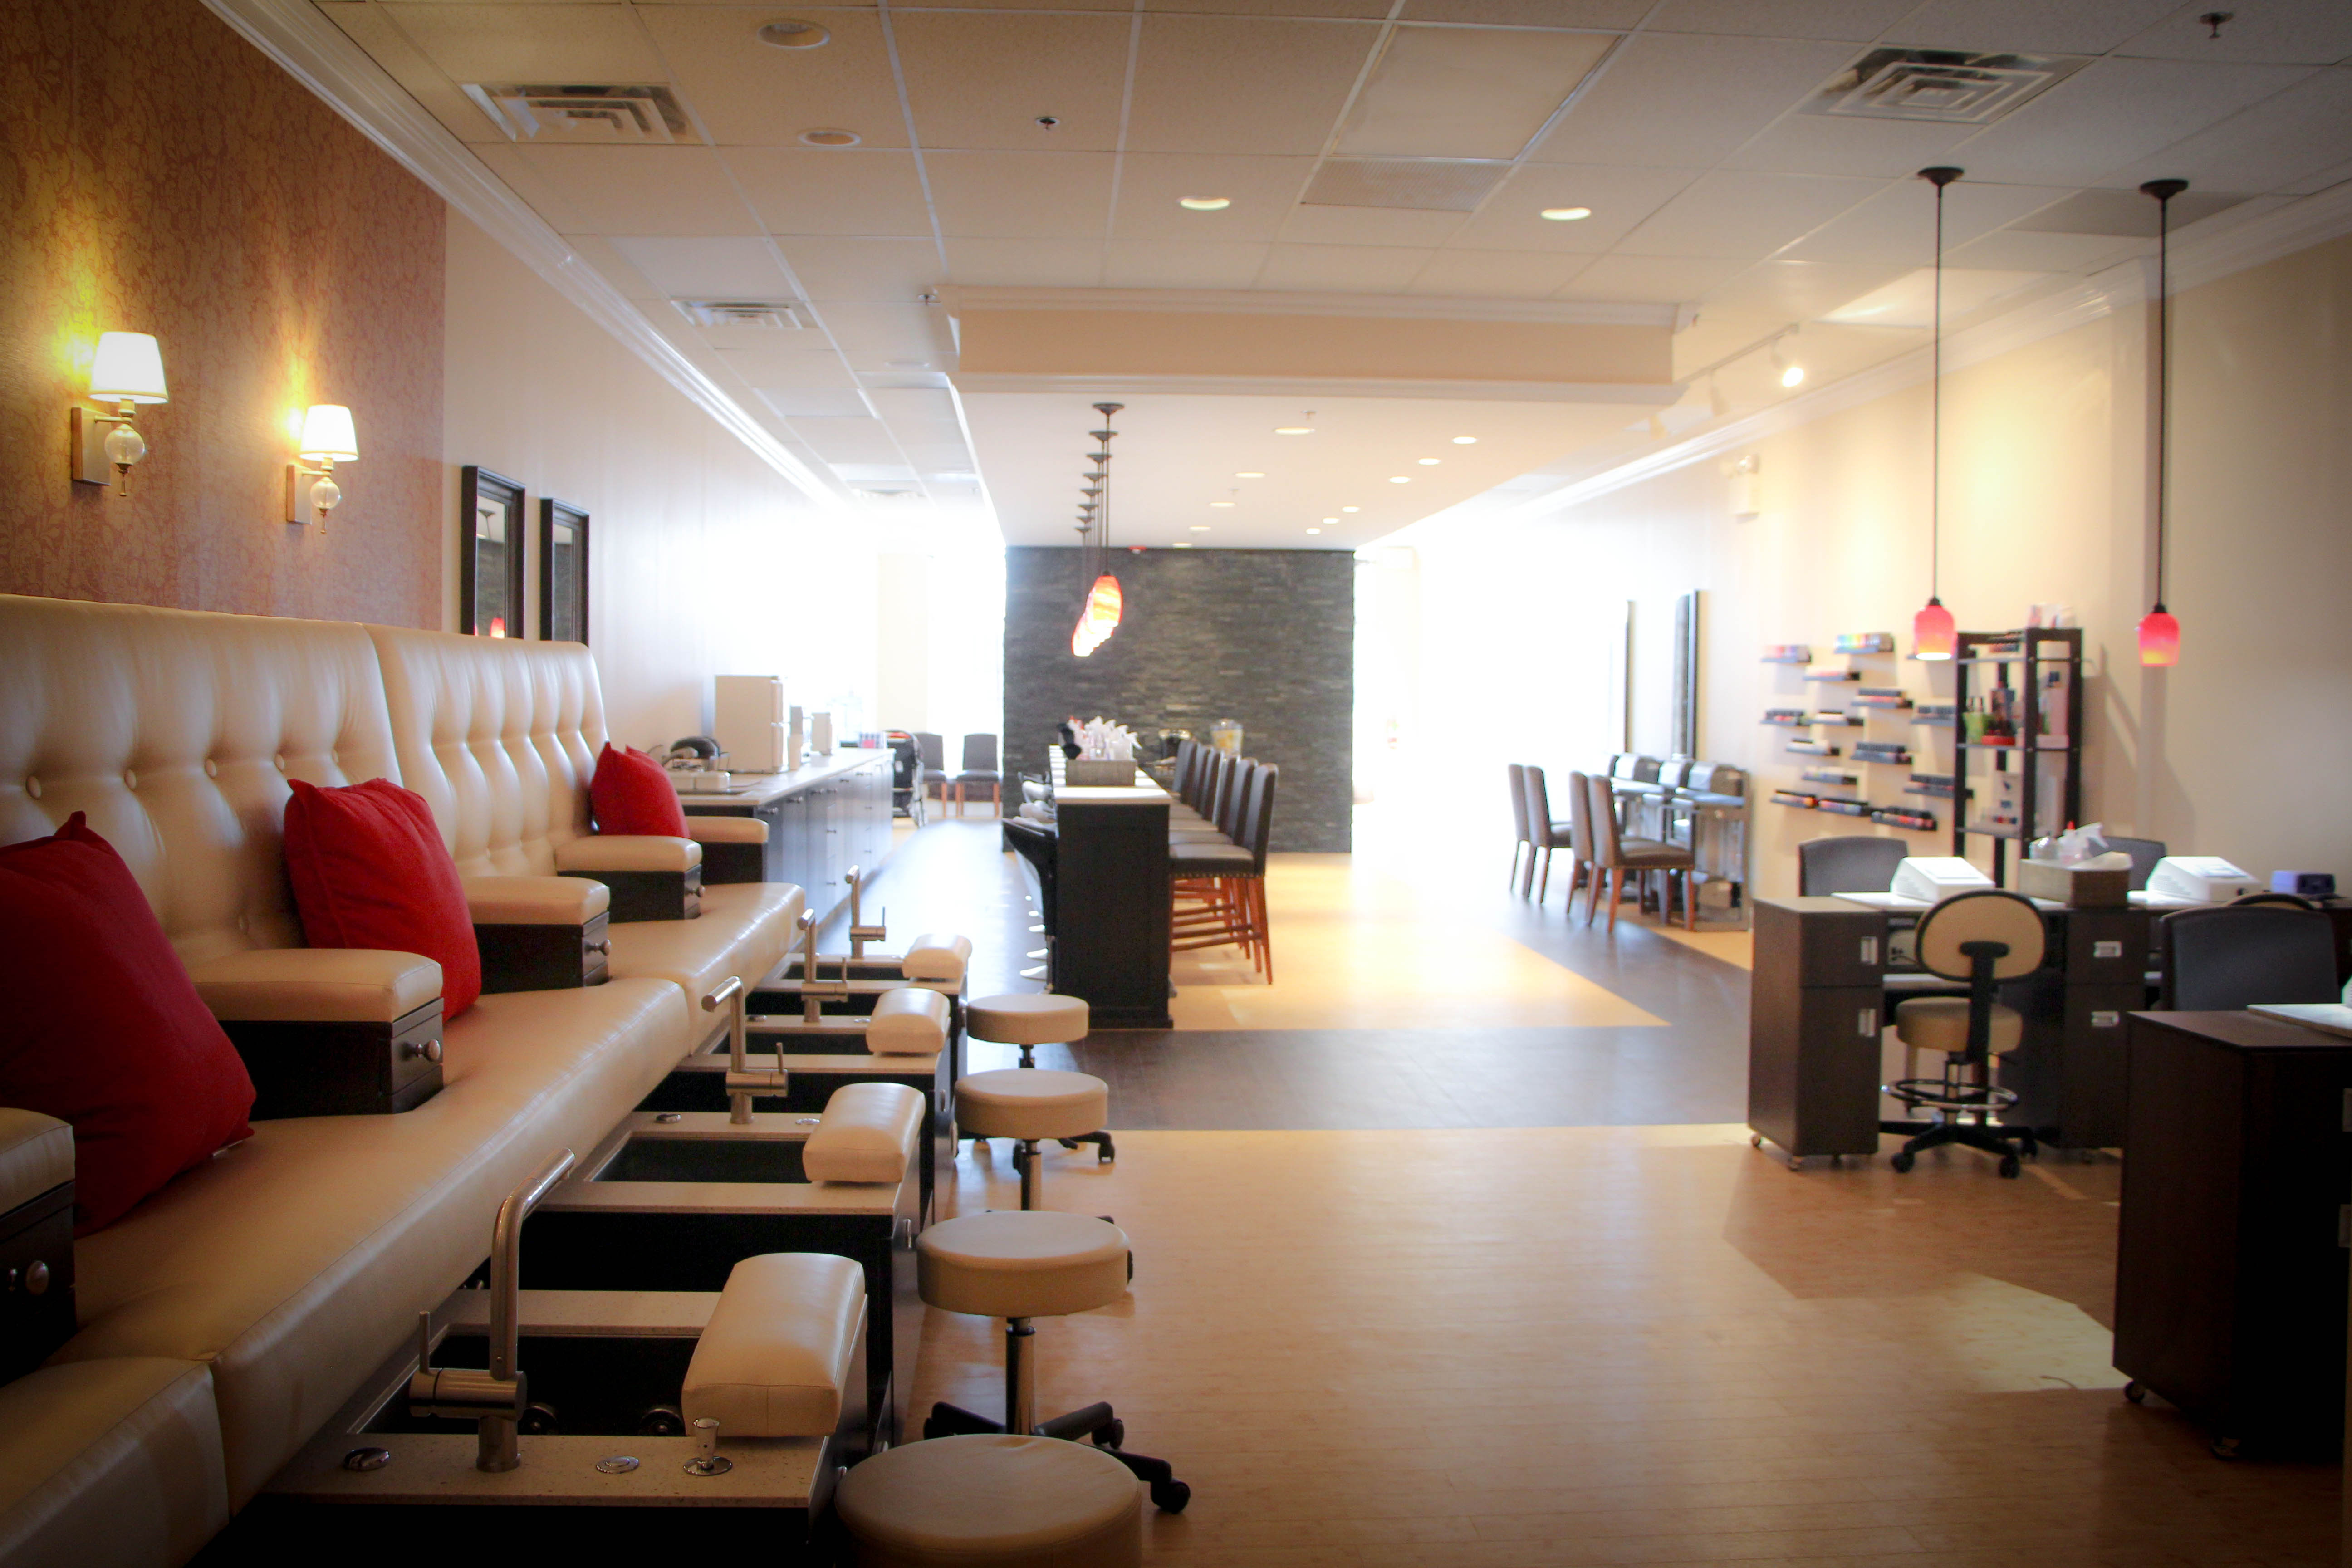 Fashion Nail Beauty Spa Elizabeth Nj: Koi Nail Spa Voorhees Nj